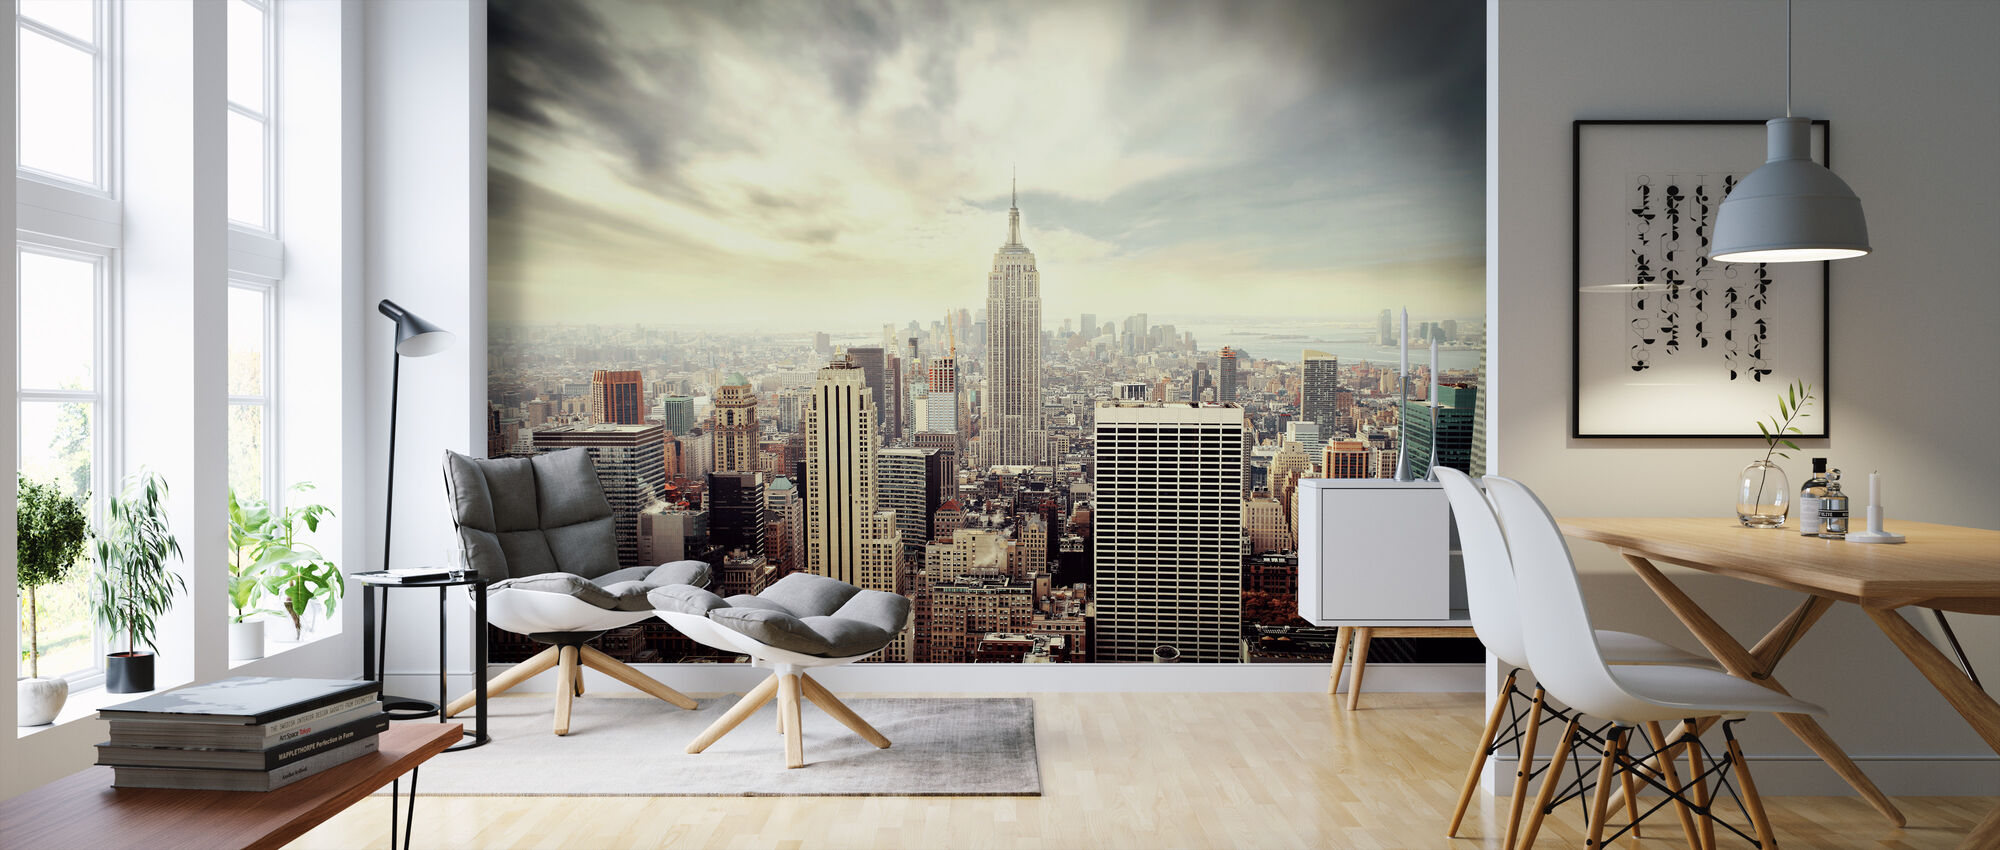 Enchanting New York Vintage High Quality Wall Murals With Free